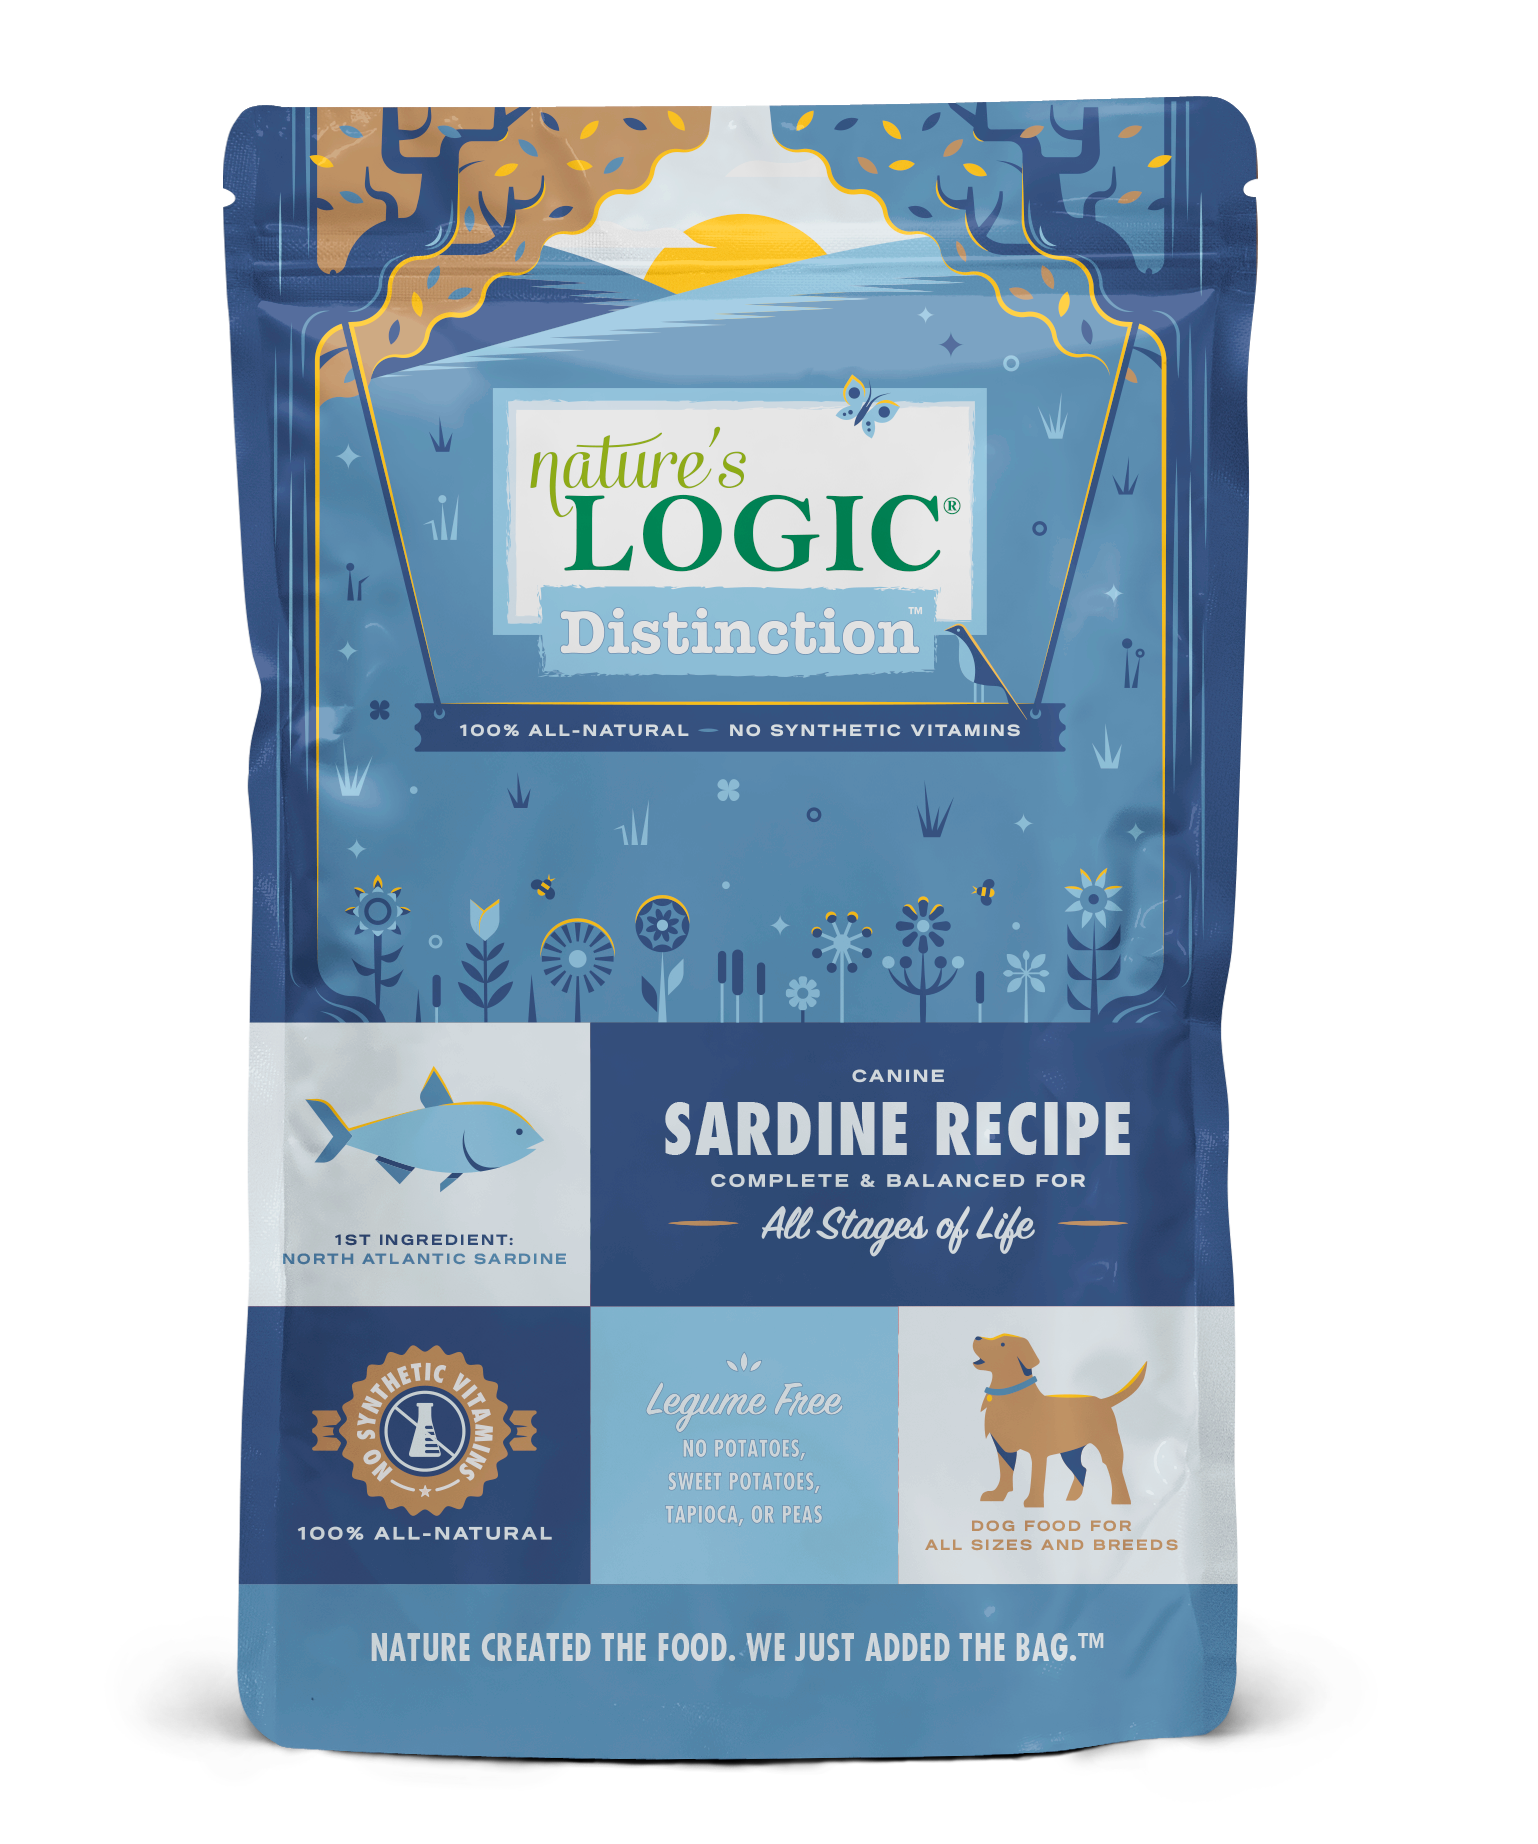 Nature's Logic Distinction Sardine Recipe Dog Food, 24-lb